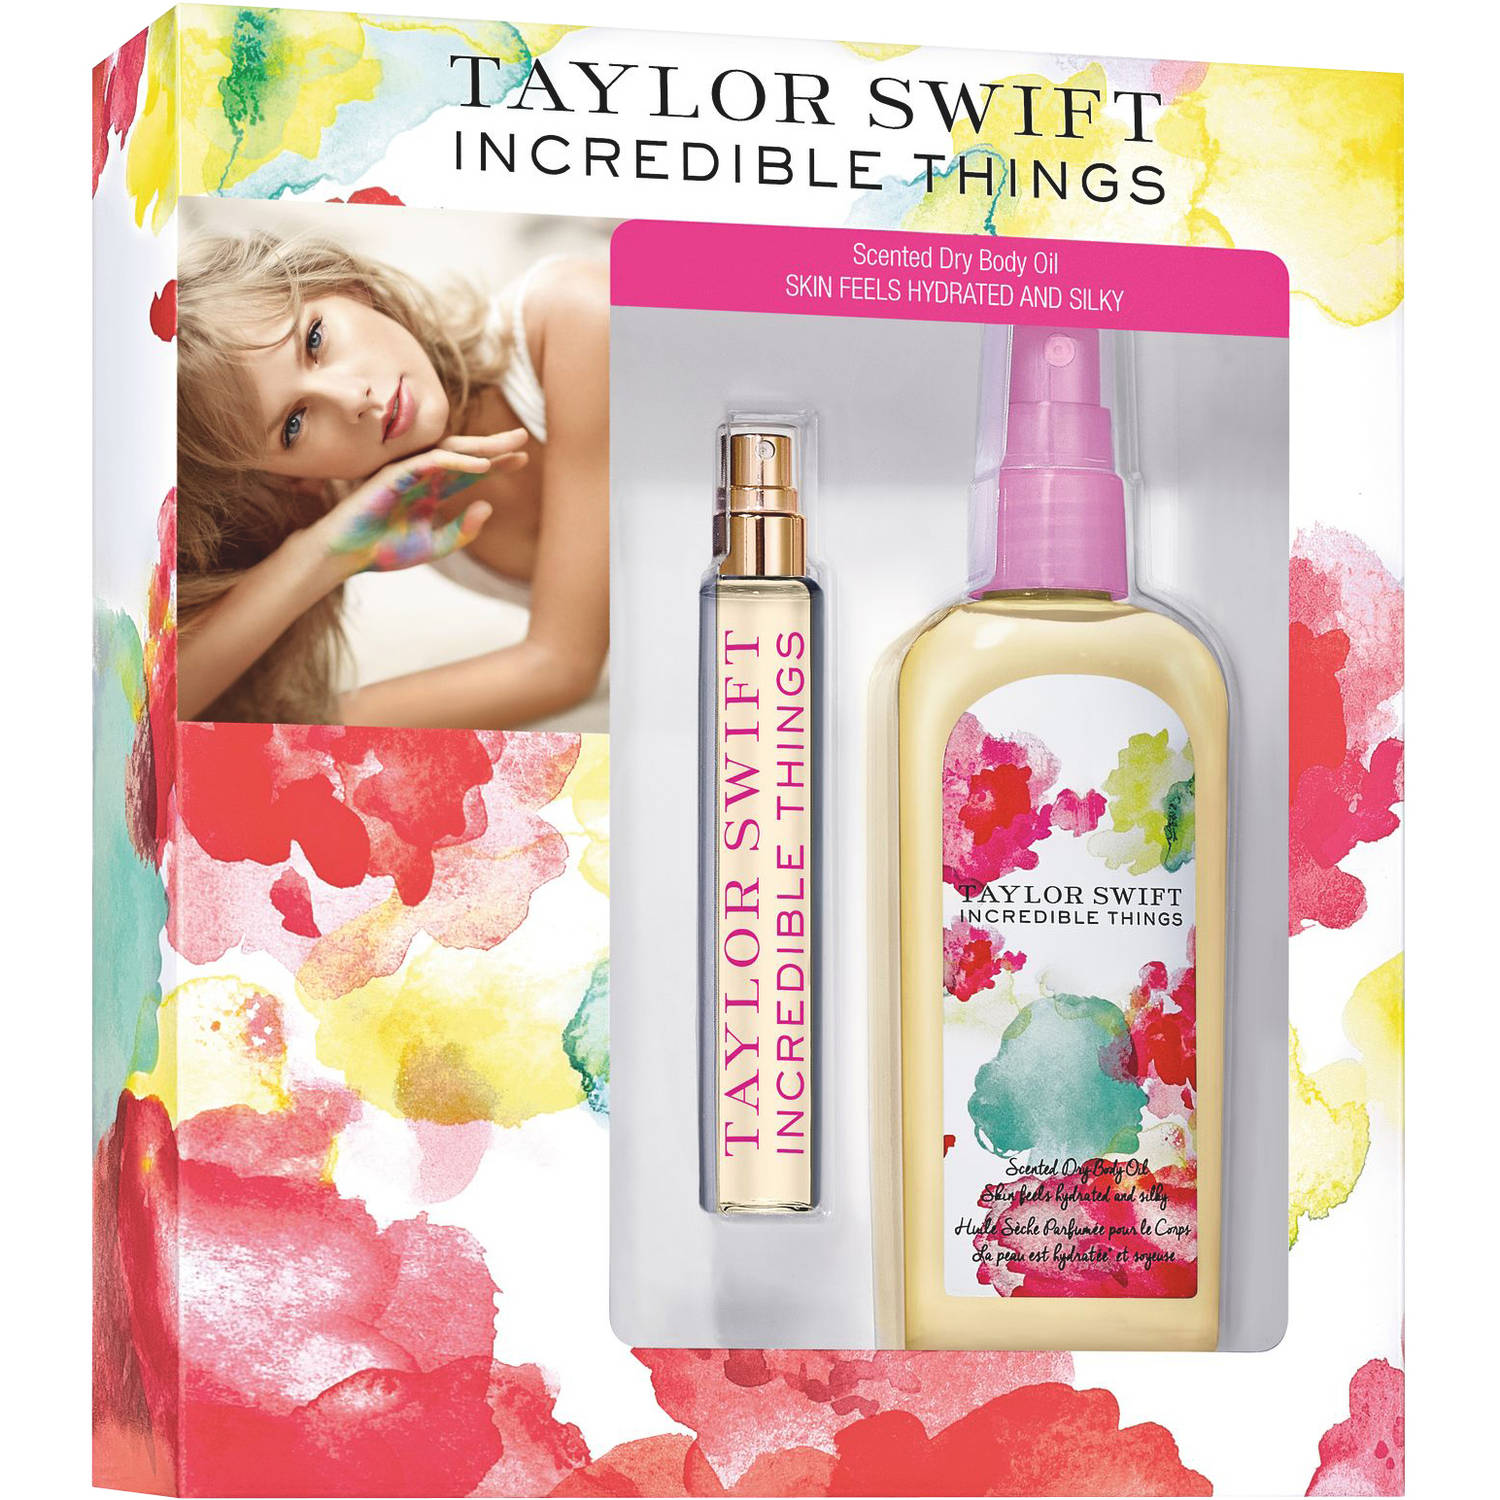 Taylor Swift Incredible Things Fragrance Gift Set, 2 pc